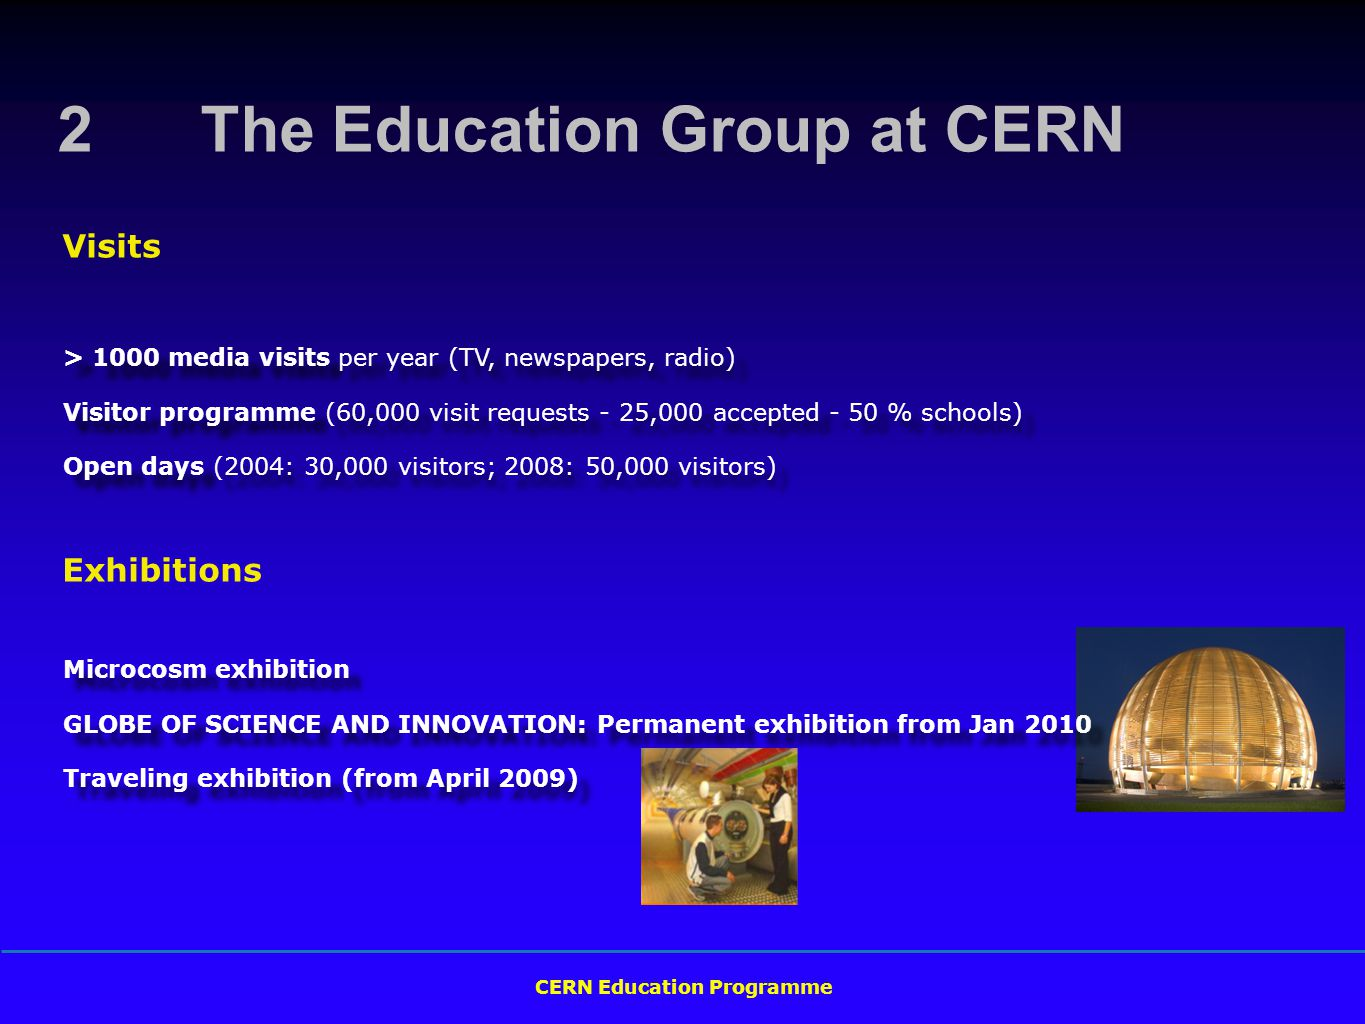 CERN Education Programme > 1000 media visits per year (TV, newspapers, radio) Visitor programme (60,000 visit requests - 25,000 accepted - 50 % schools) Open days (2004: 30,000 visitors; 2008: 50,000 visitors) > 1000 media visits per year (TV, newspapers, radio) Visitor programme (60,000 visit requests - 25,000 accepted - 50 % schools) Open days (2004: 30,000 visitors; 2008: 50,000 visitors) Visits 2 The Education Group at CERN Exhibitions Microcosm exhibition GLOBE OF SCIENCE AND INNOVATION: Permanent exhibition from Jan 2010 Traveling exhibition (from April 2009) Microcosm exhibition GLOBE OF SCIENCE AND INNOVATION: Permanent exhibition from Jan 2010 Traveling exhibition (from April 2009)